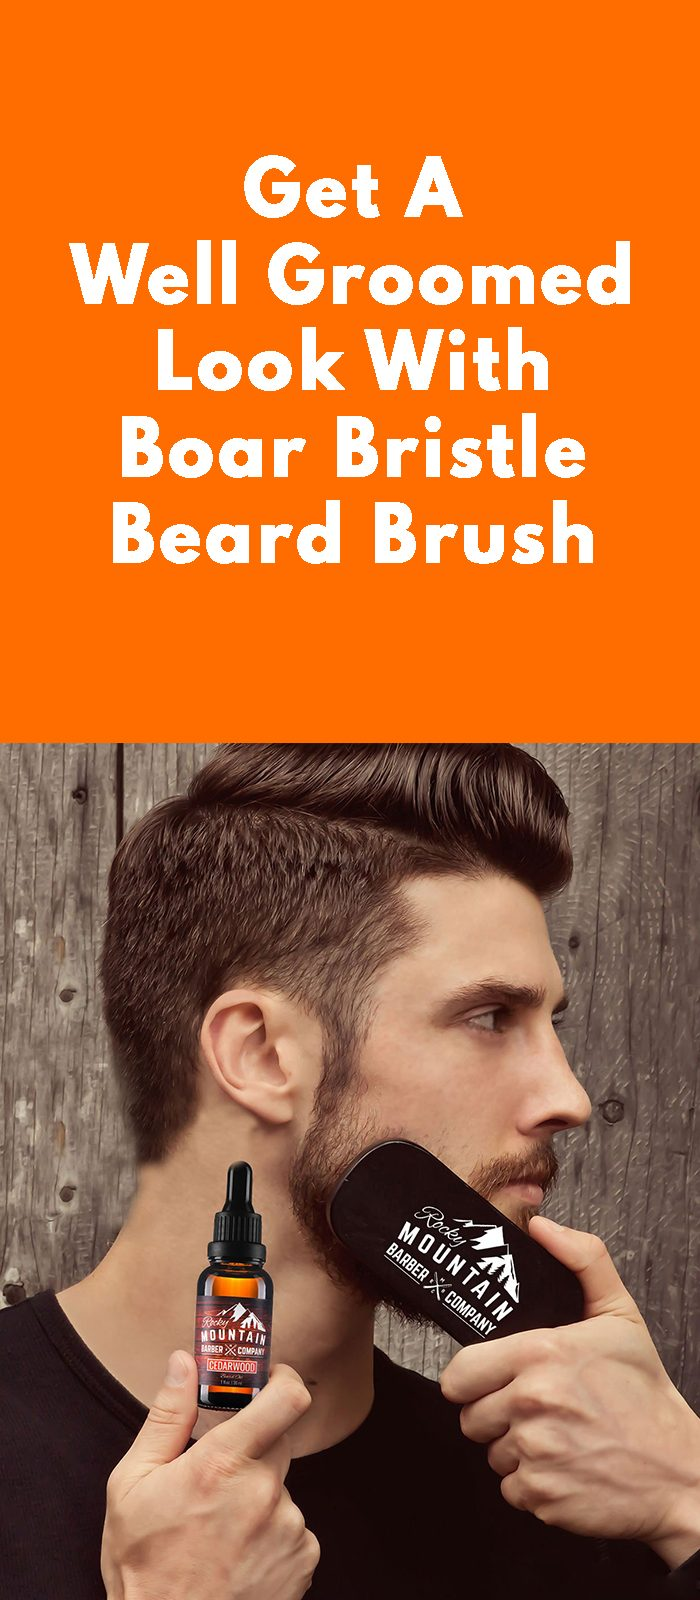 Get A Well Groomed Look With Boar Bristle Beard Brush.